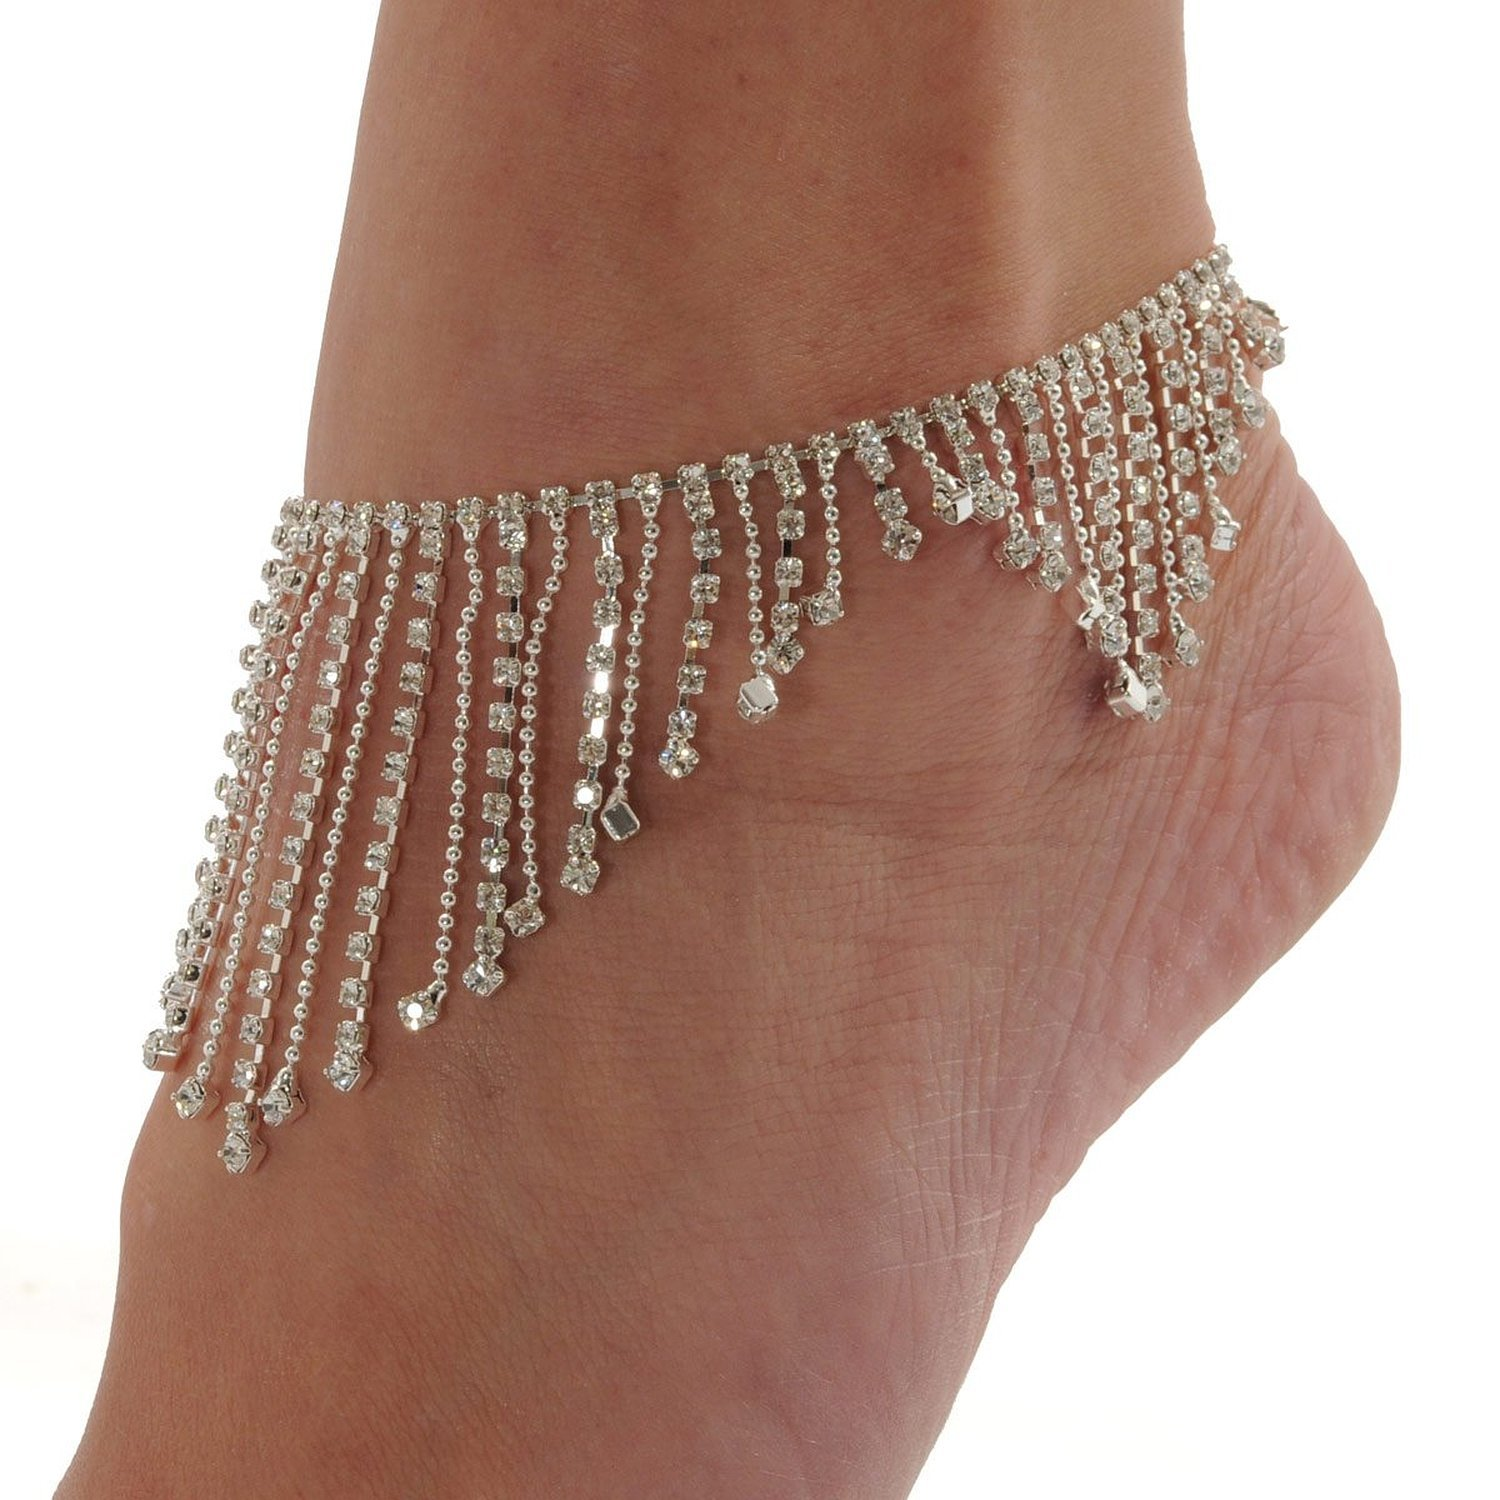 flop bling jewelry dangling bracelet anklet silver adjustable tennis ankle flip sterling